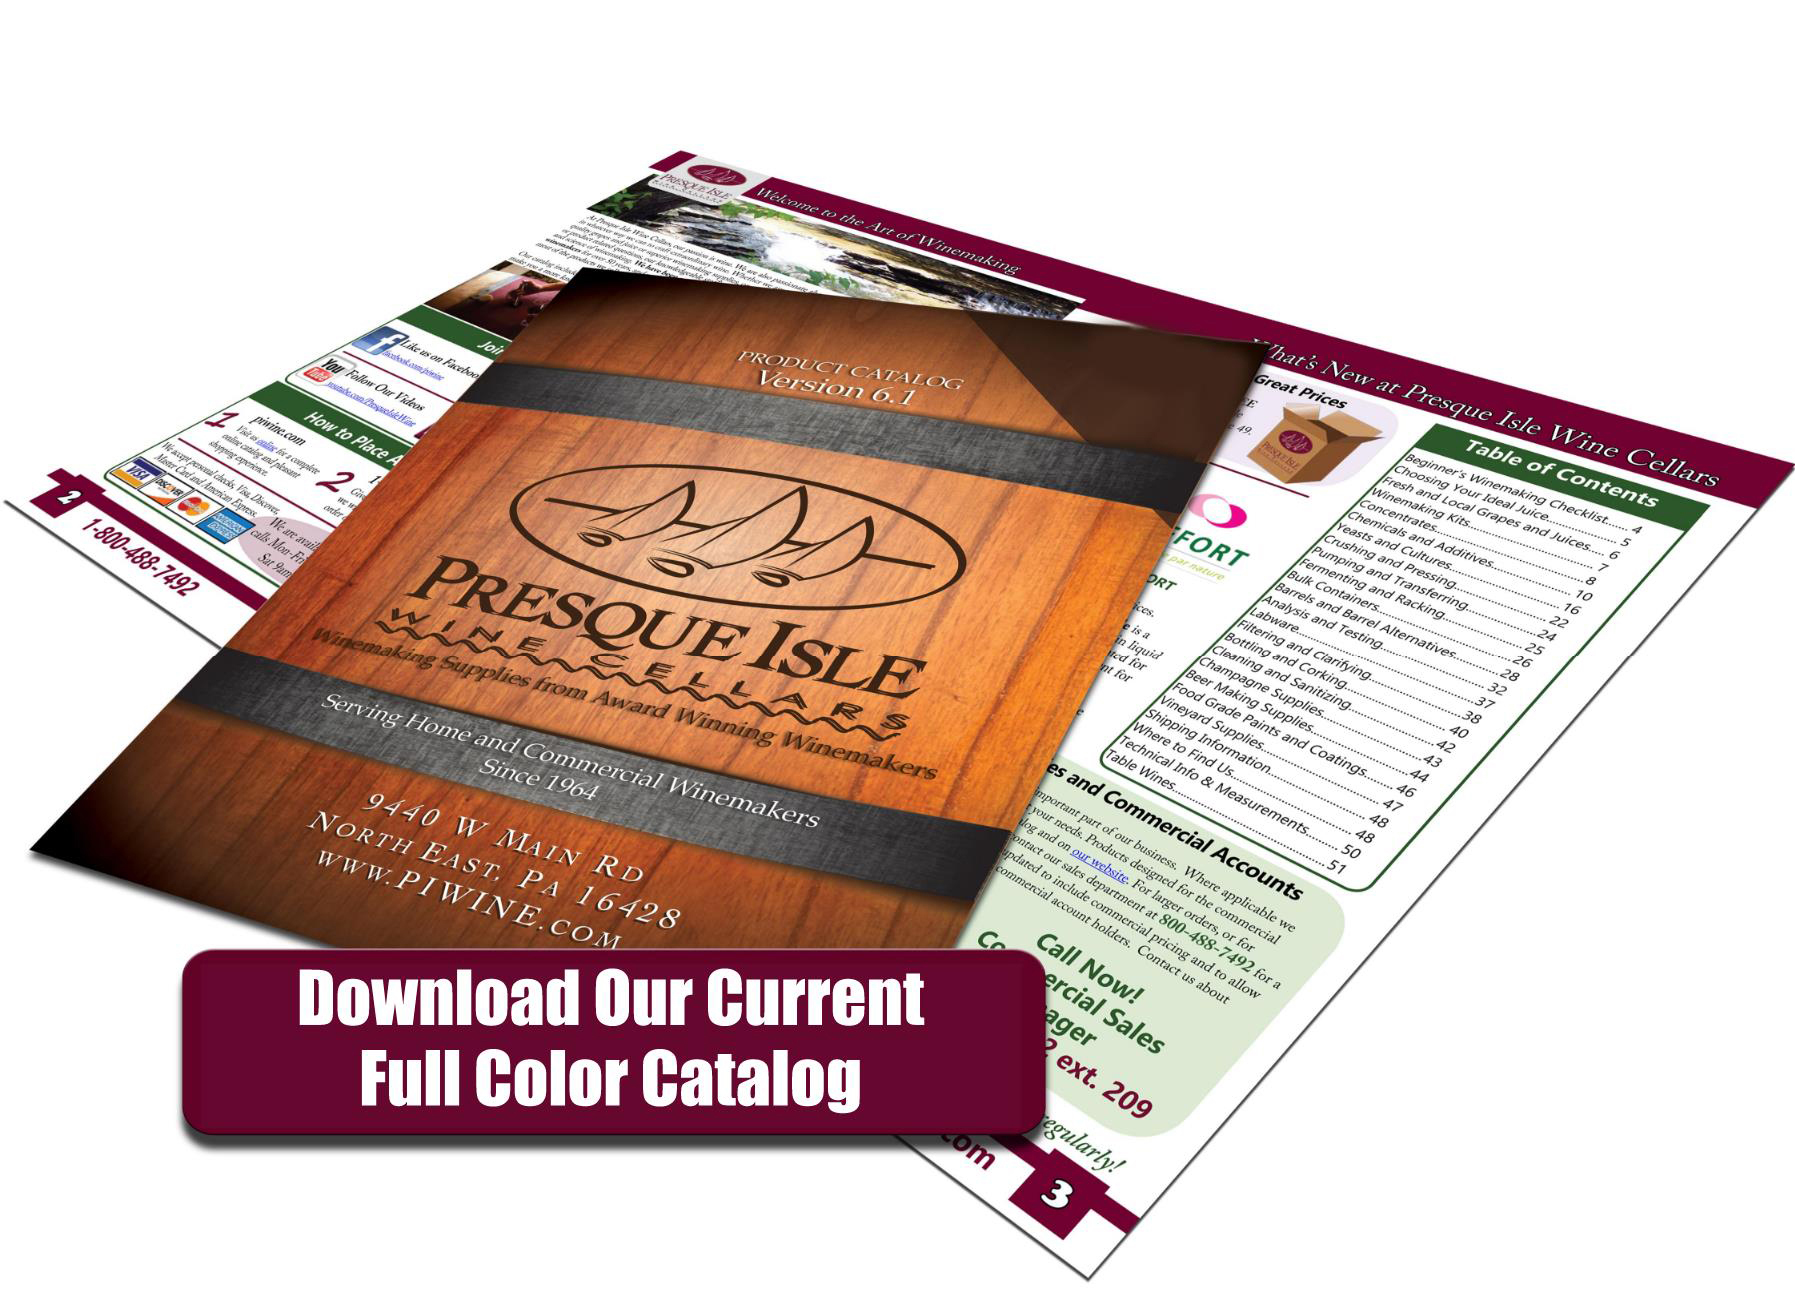 Download our current full color catalog